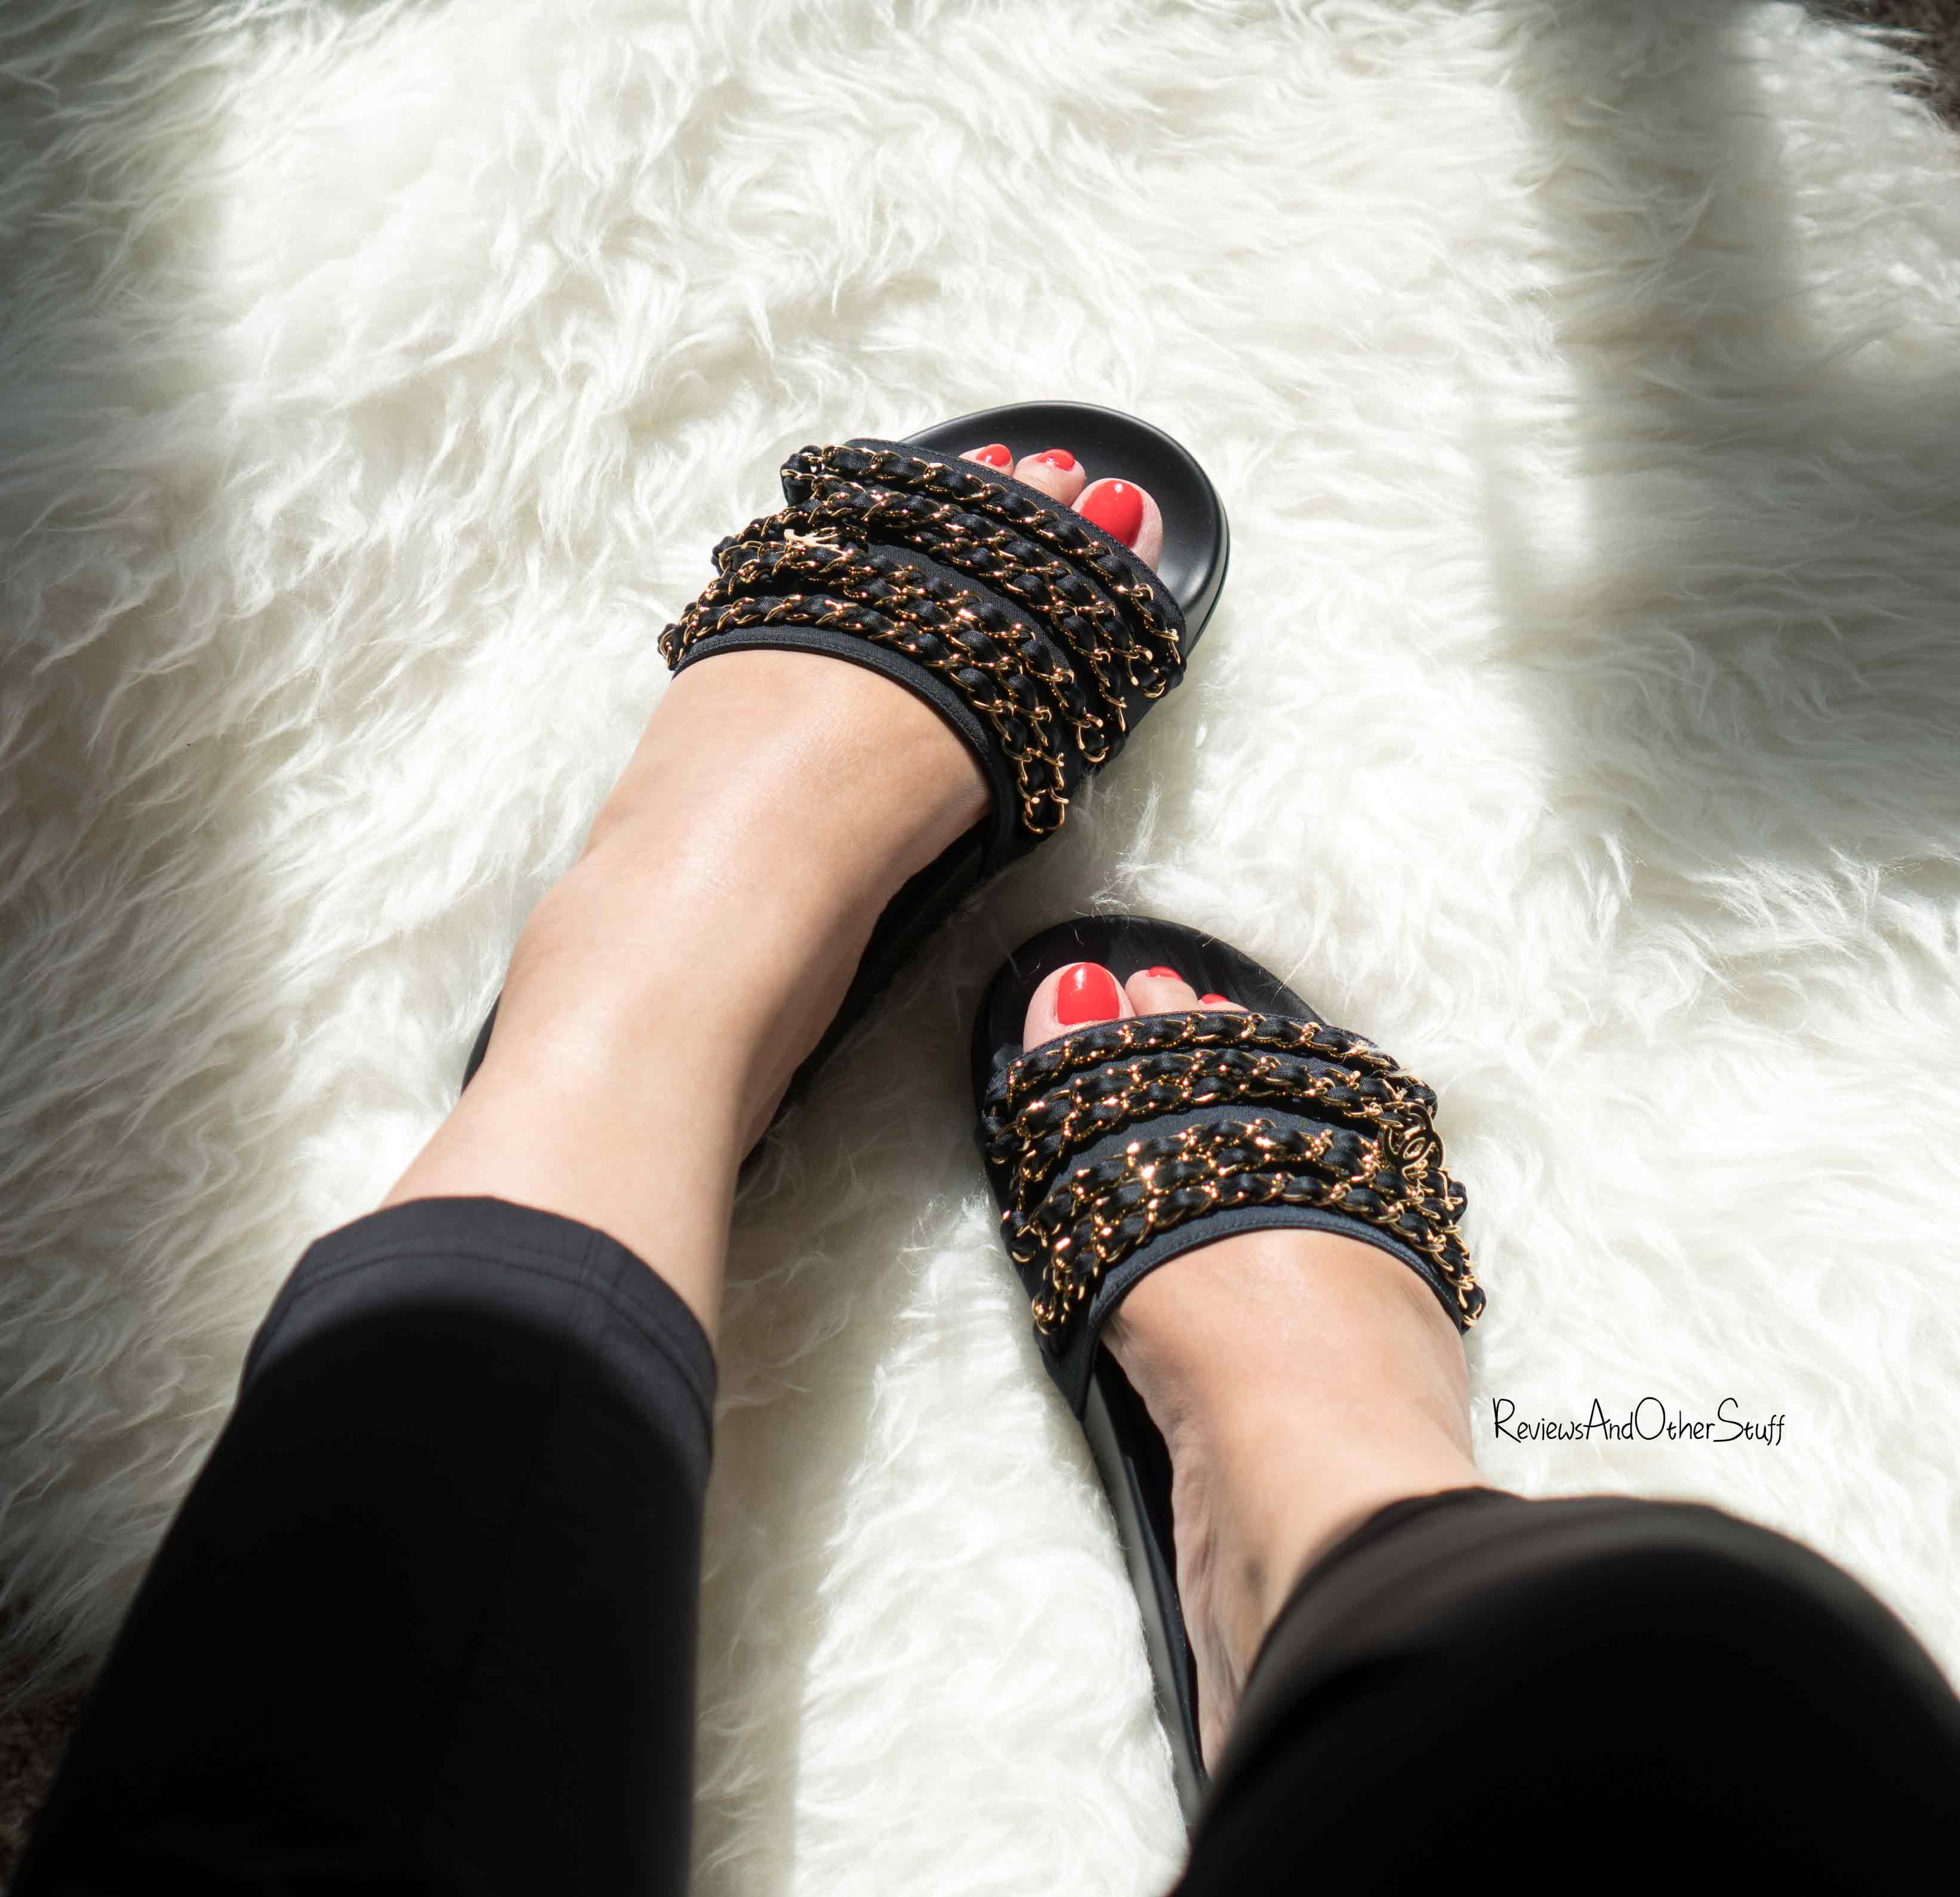 chanel slides. and i have a lot of plans for this pair chanel slides. mean course, who wouldn\u0027t want to wear the shoes that almost got away? slides u